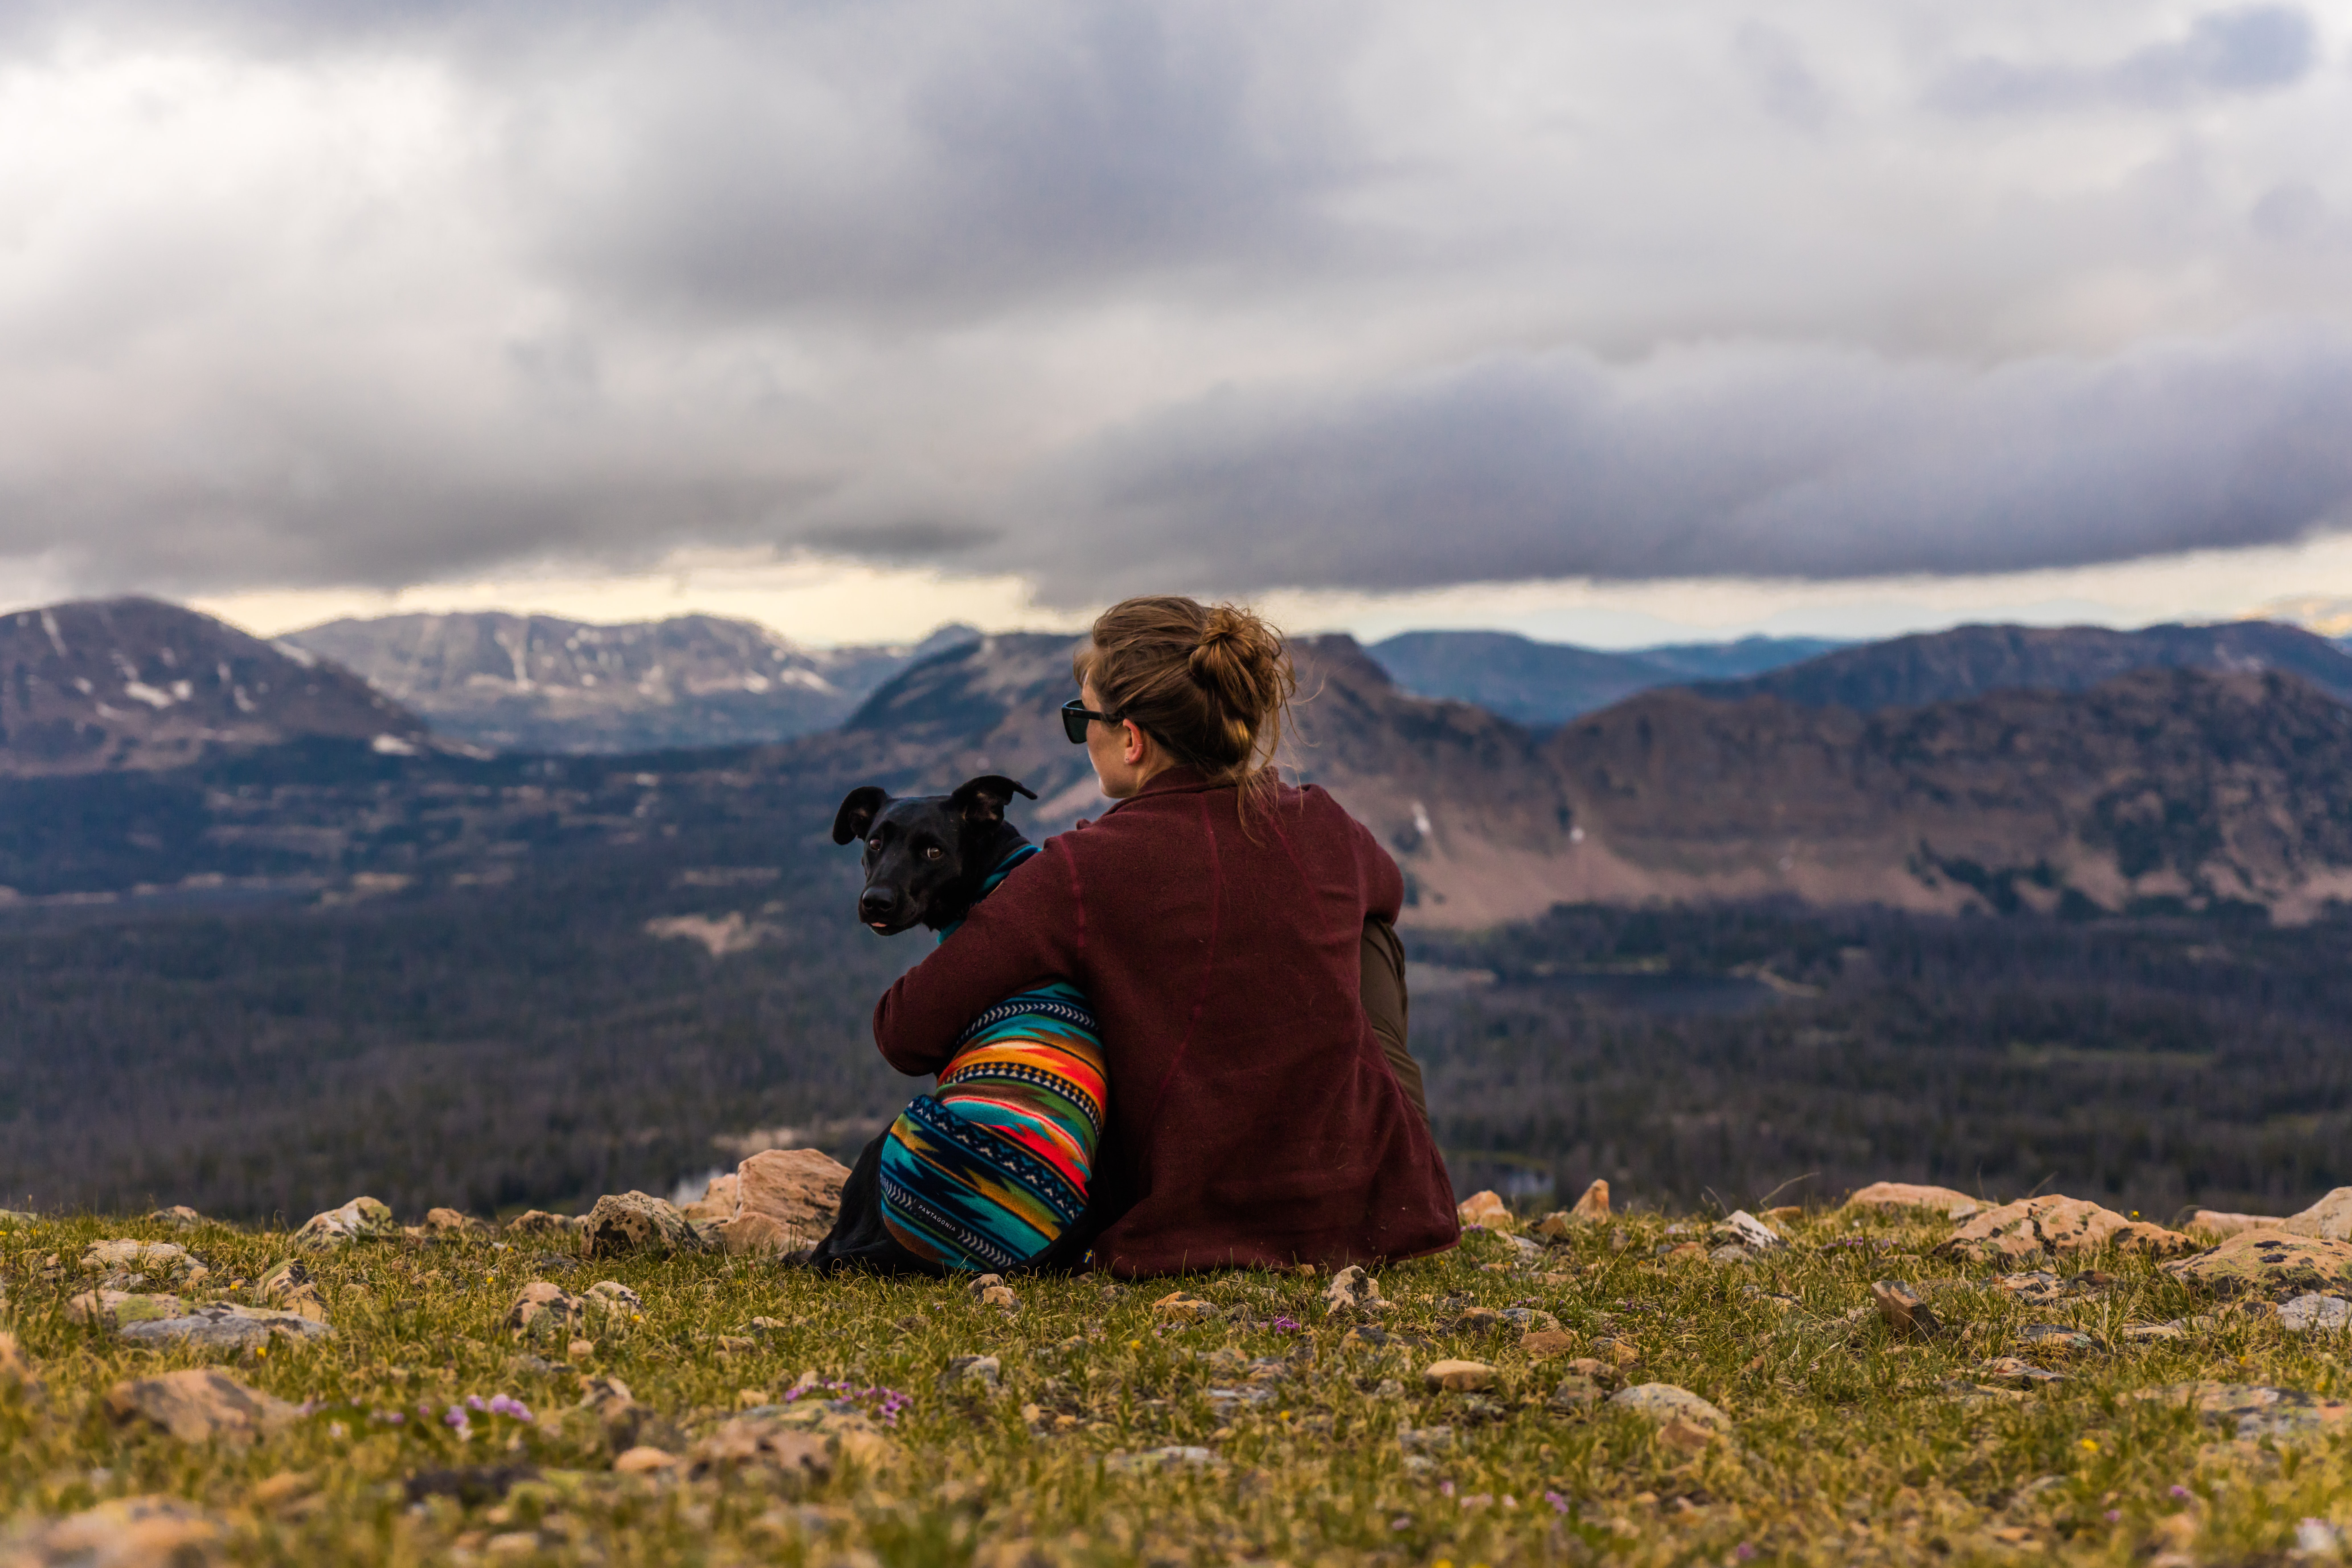 woman sitting near dog on cliff overlooking mountains and forest during daytime